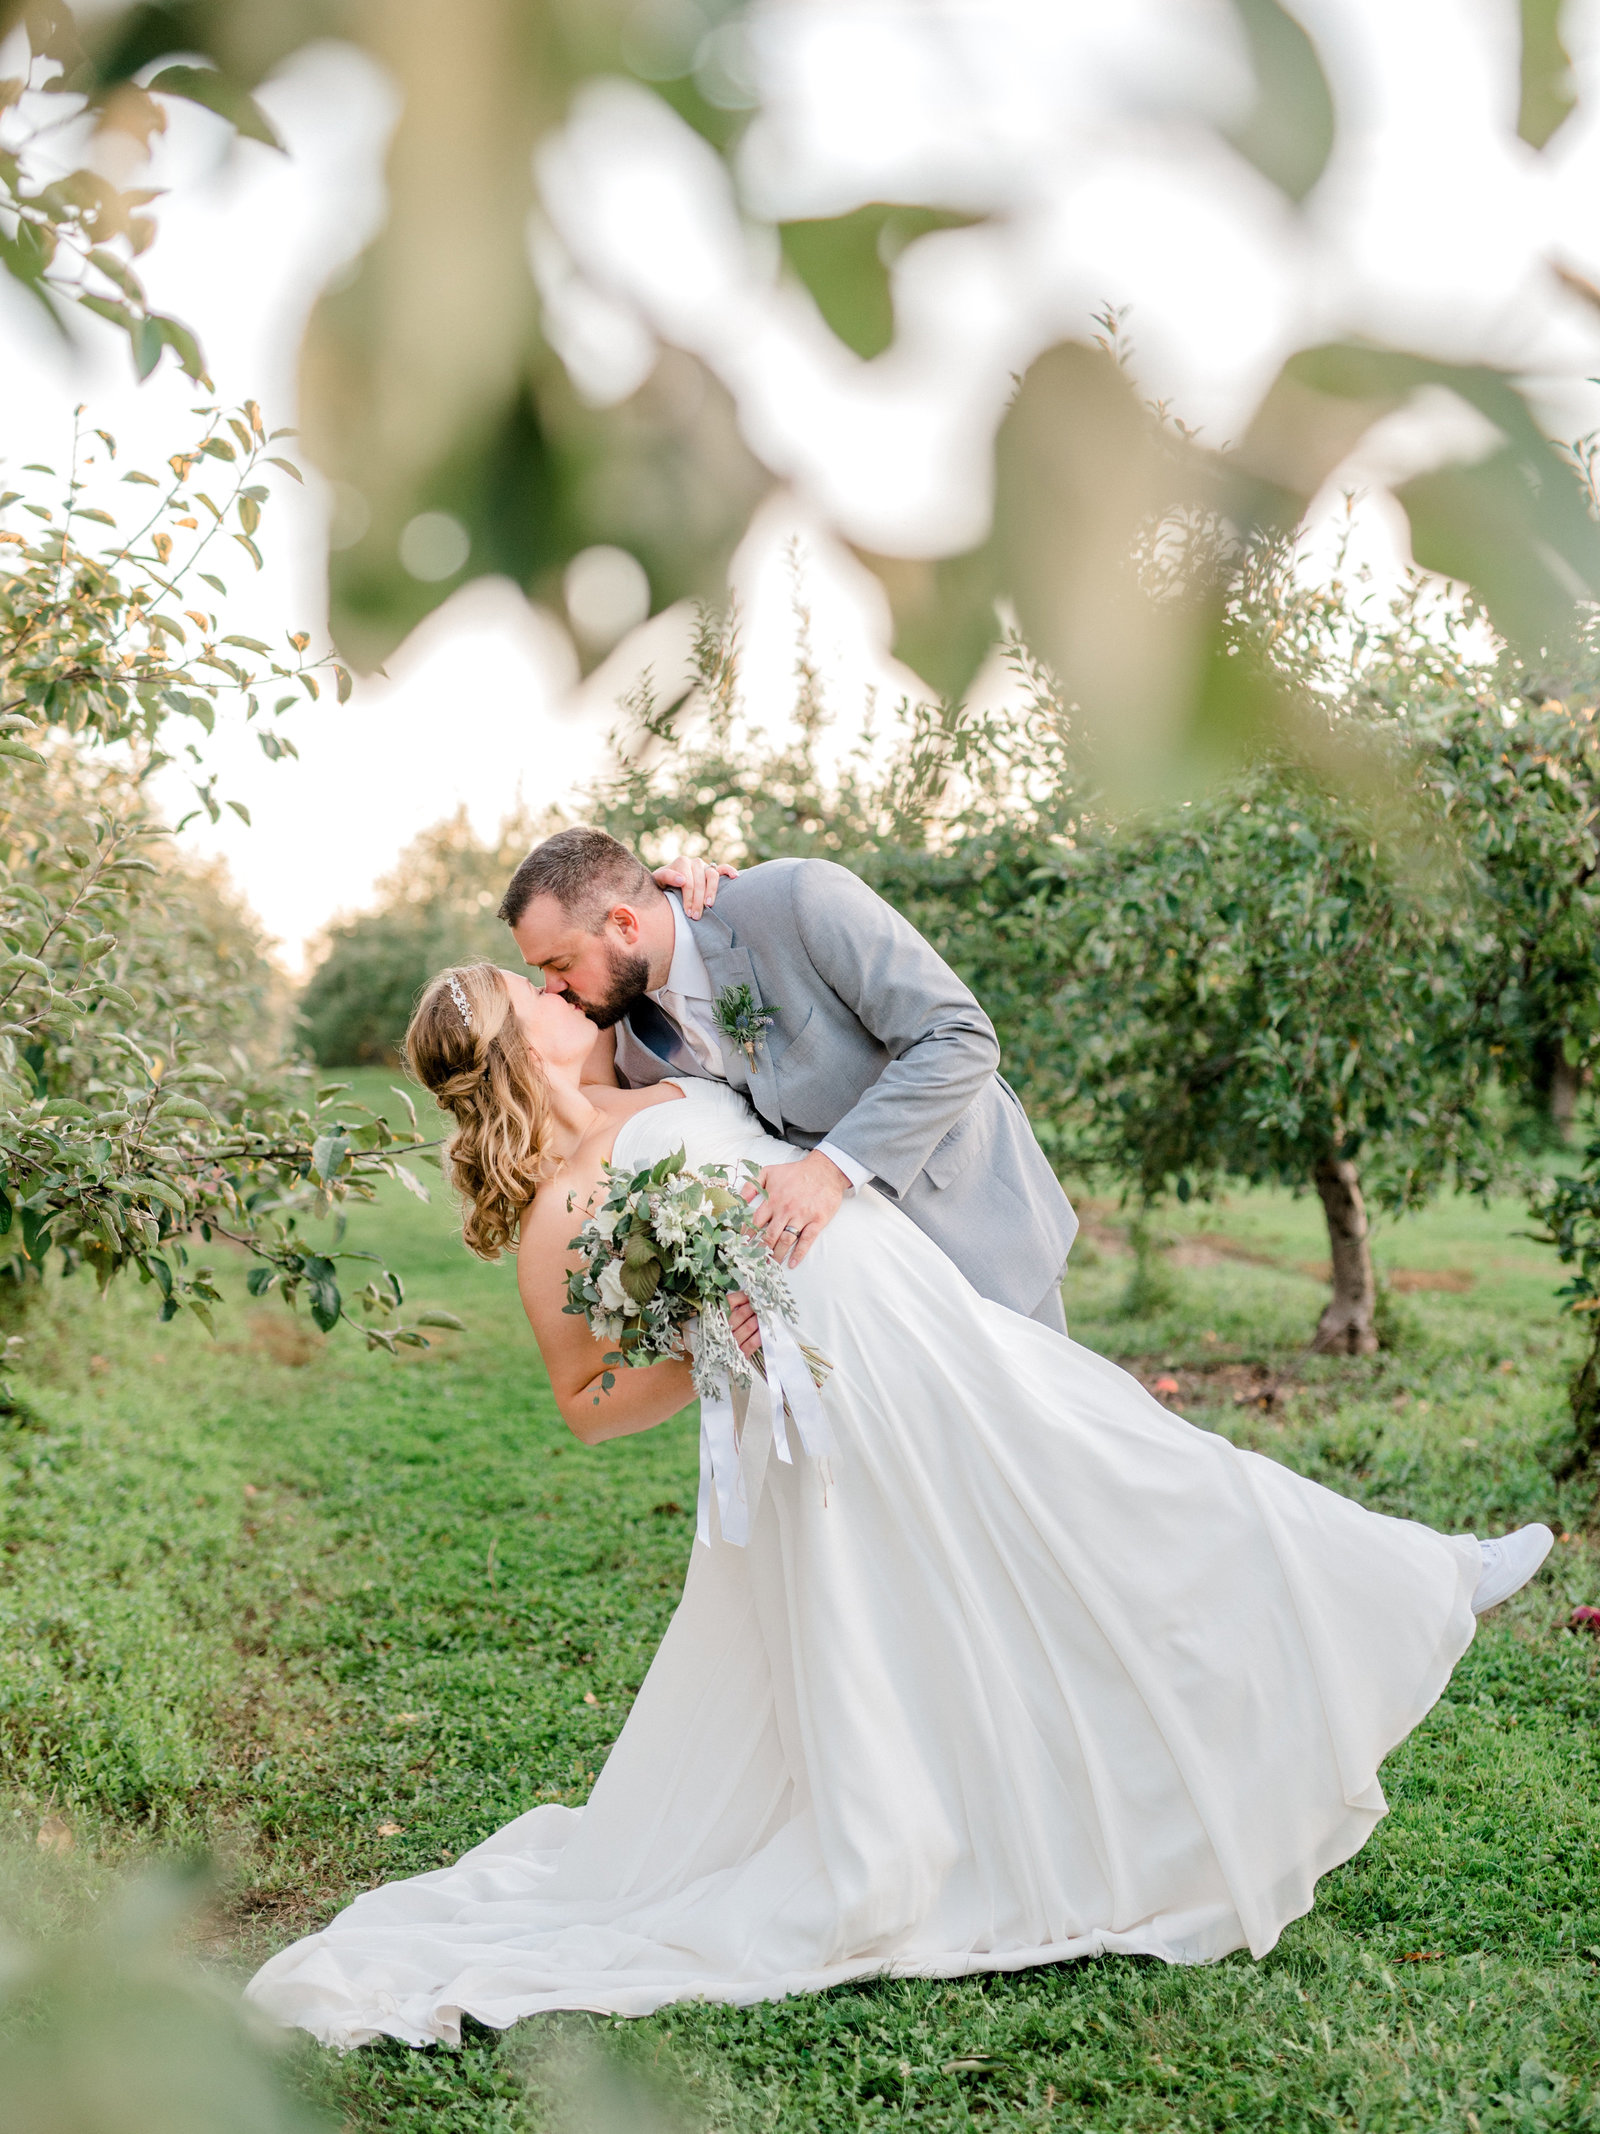 Buffalo Fall Wedding at Becker Farms